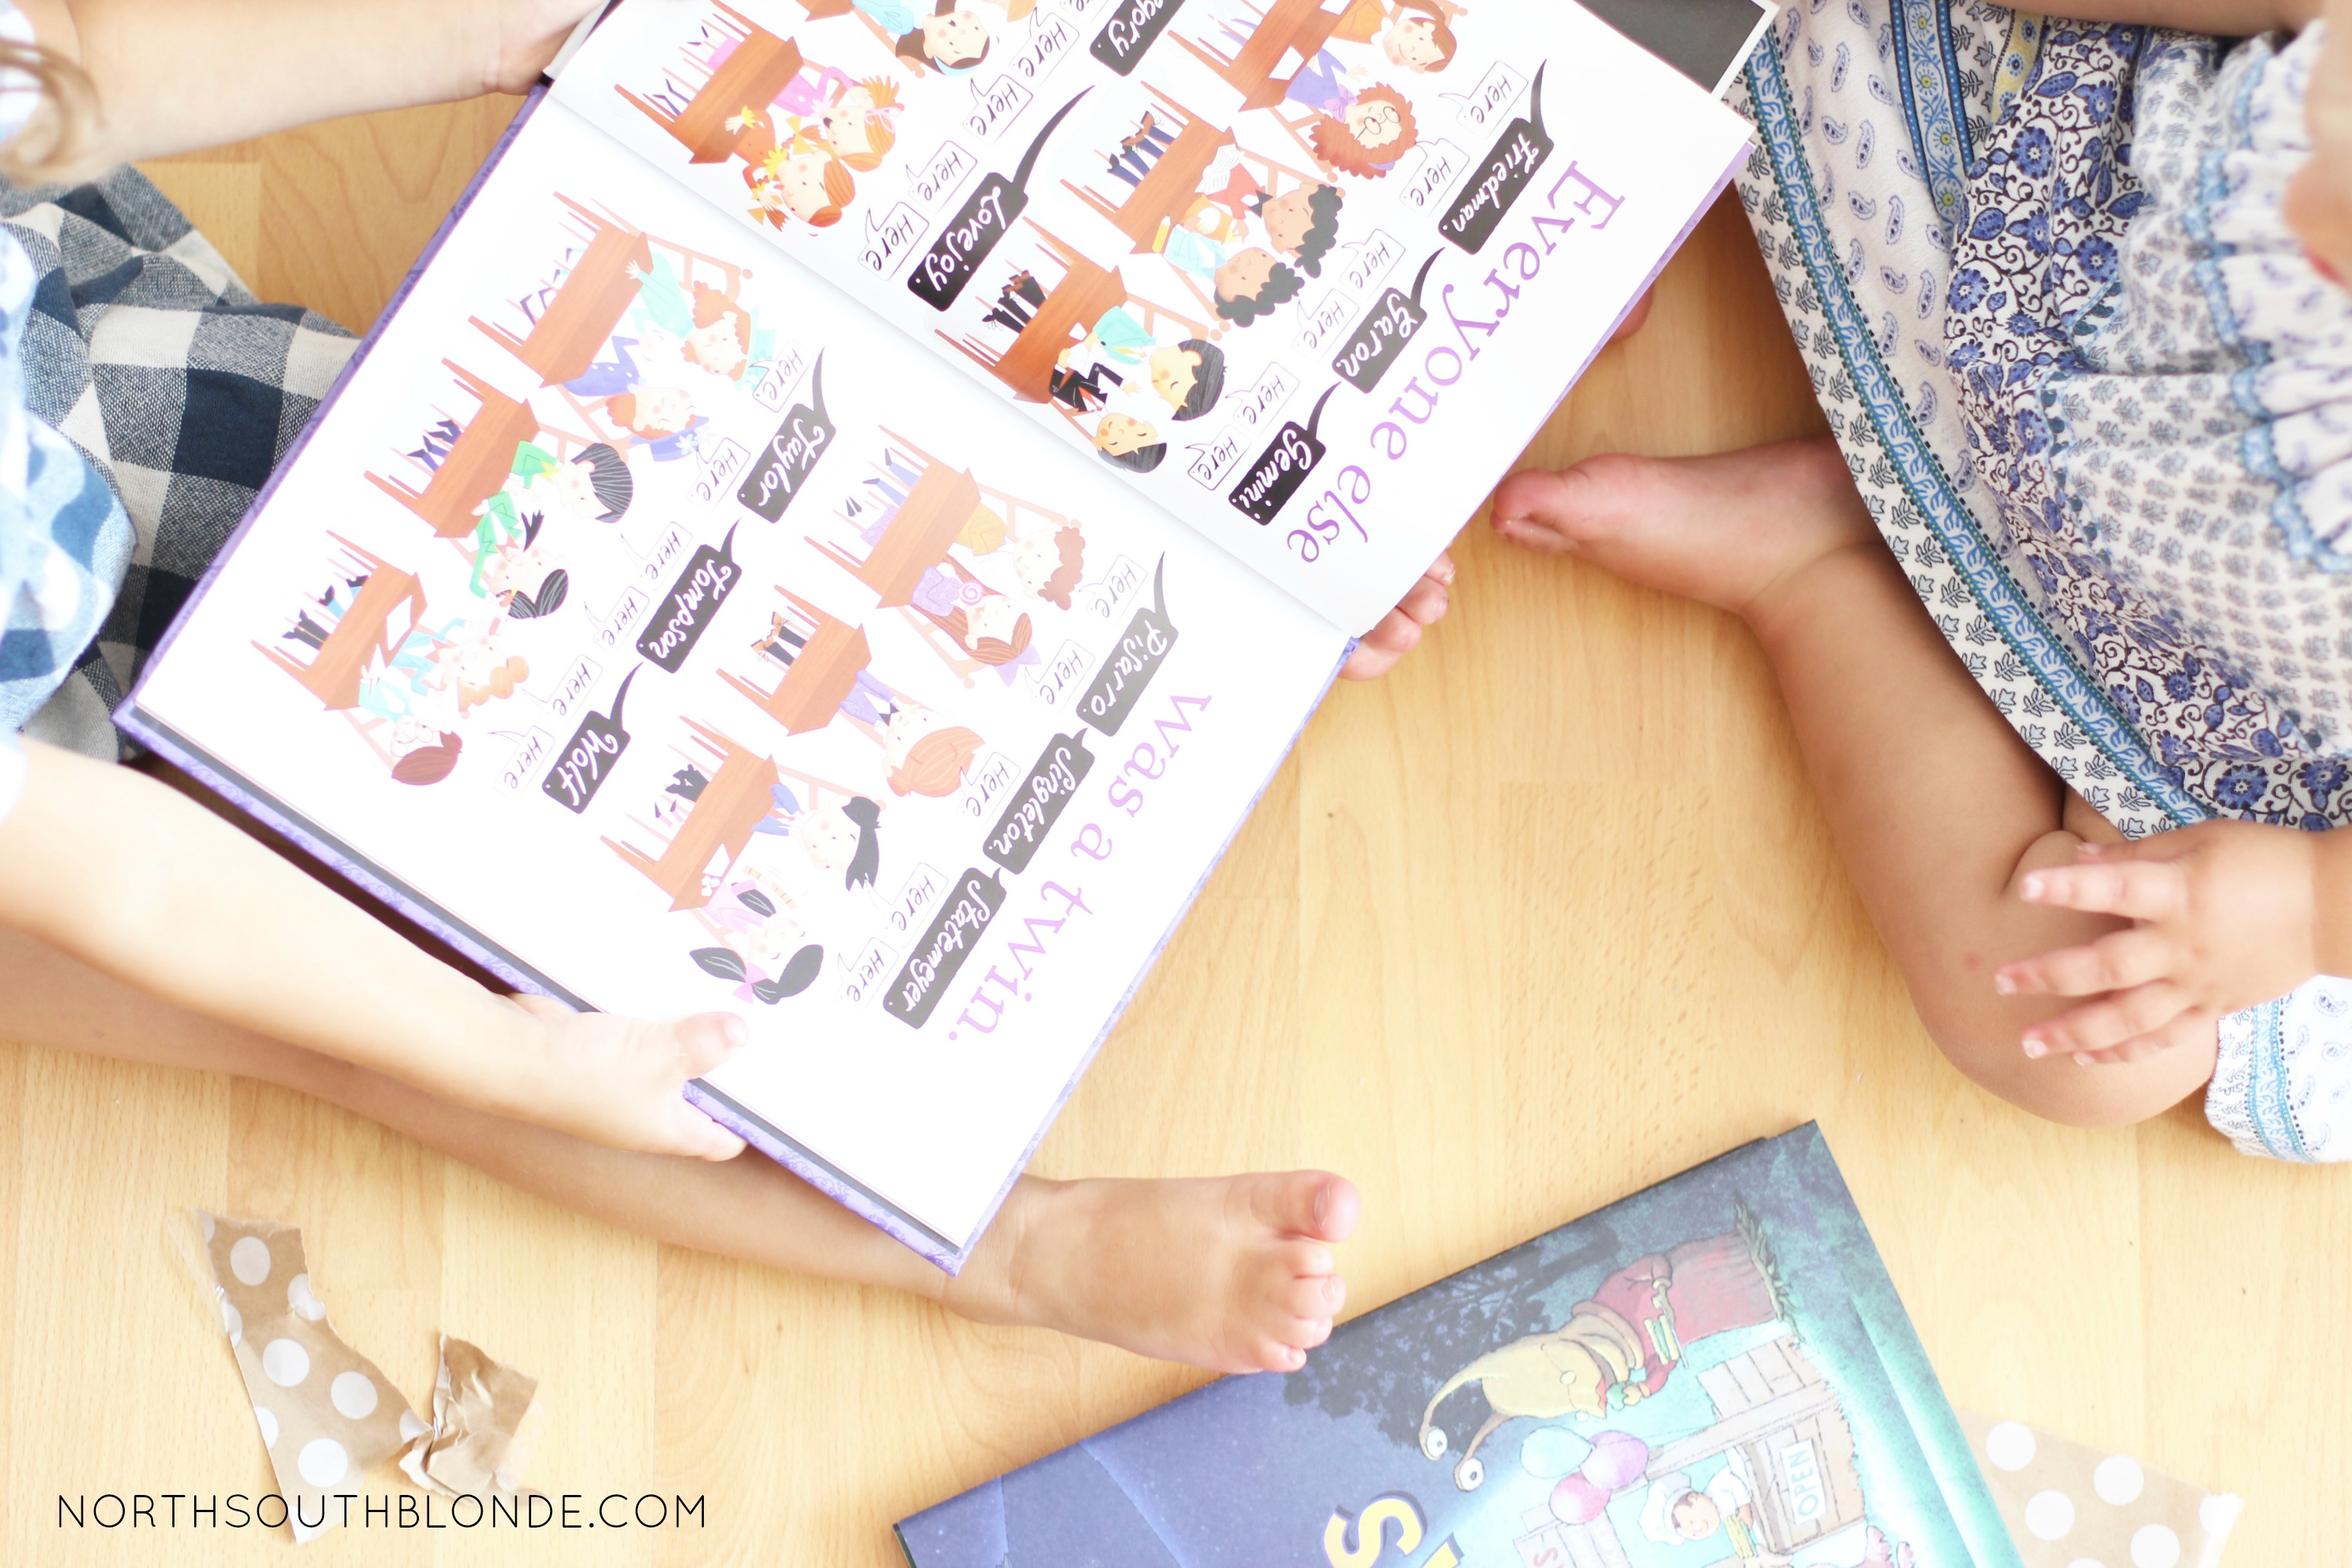 @northsouthblonde's cover photo for 'Bookroo - Children's Books (Unboxing) - North South Blonde'